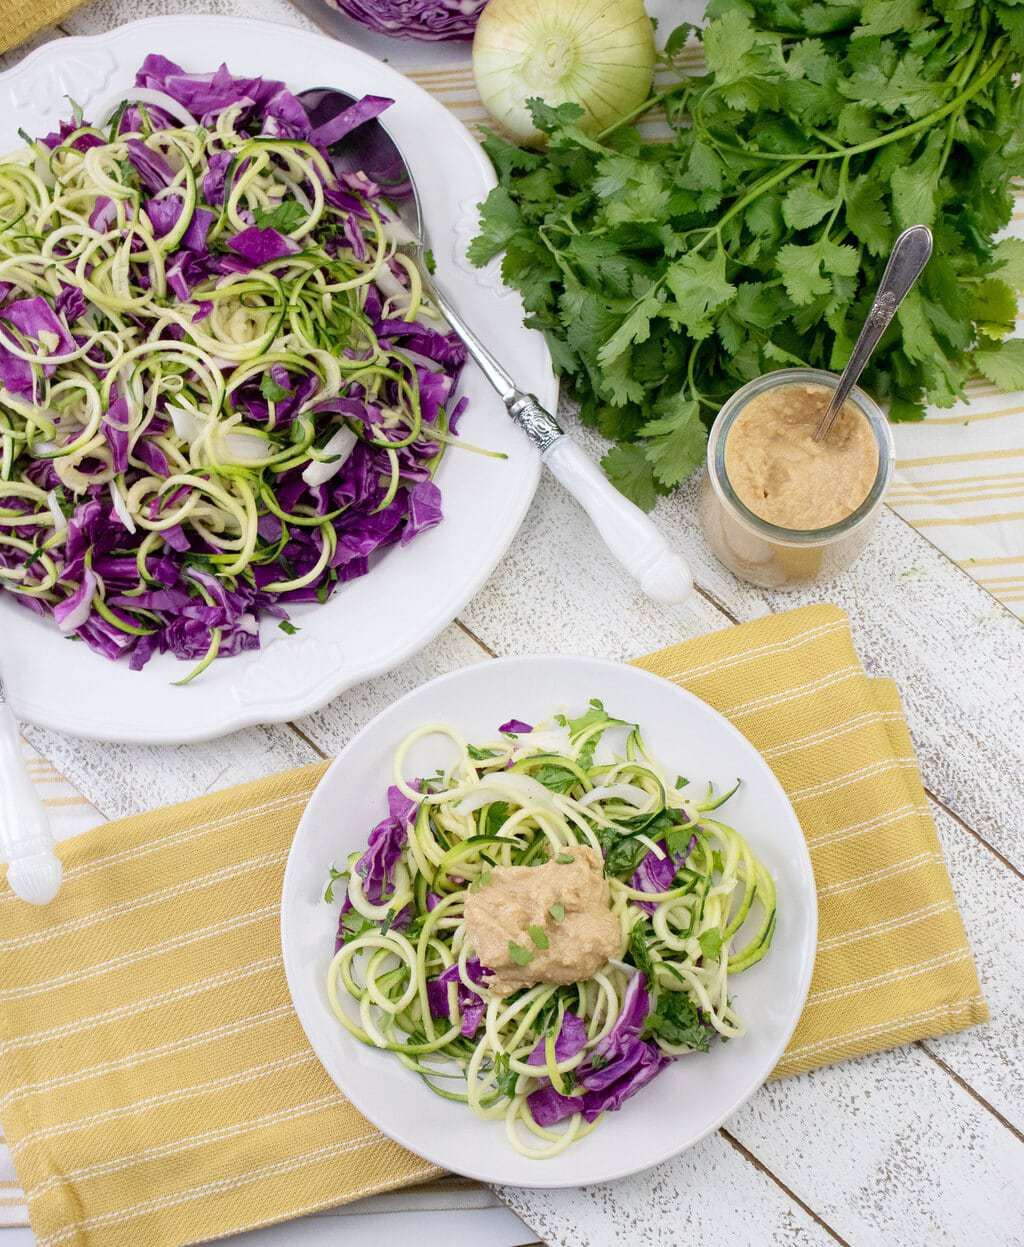 Mediterranean Zucchini Noodles made From Scratch Peanut Sauce